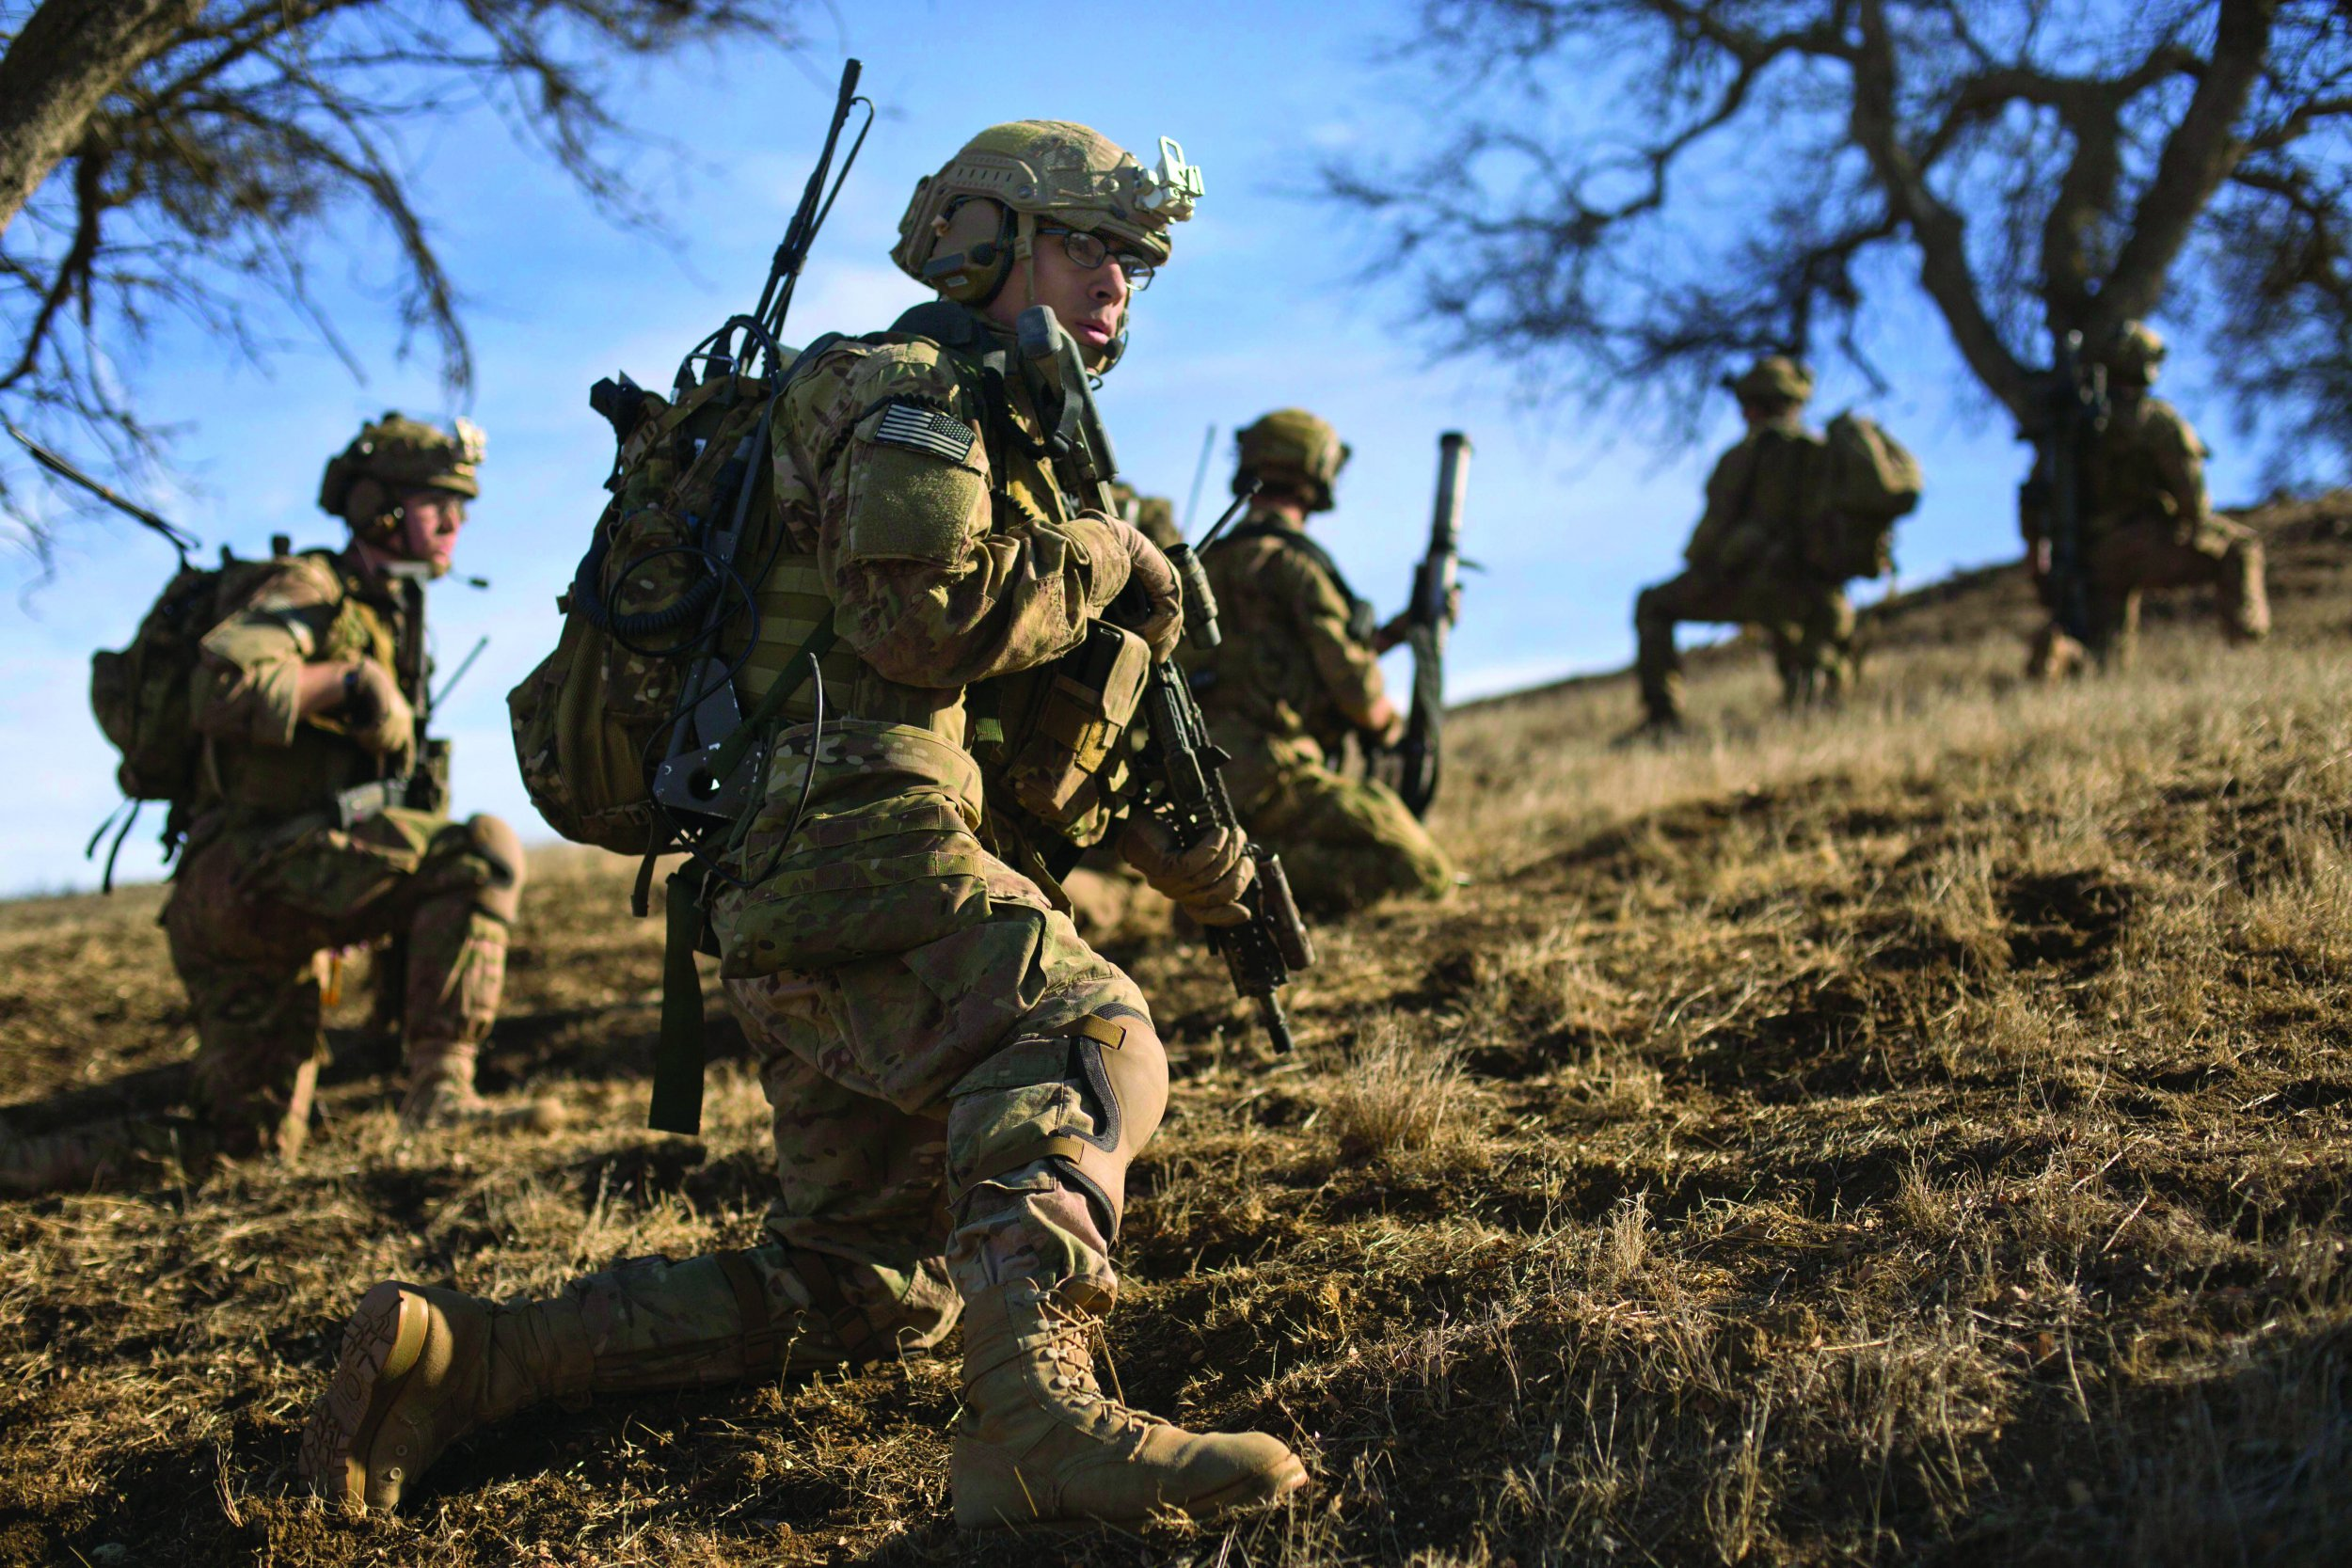 Army Rangers Of Their Own Accord